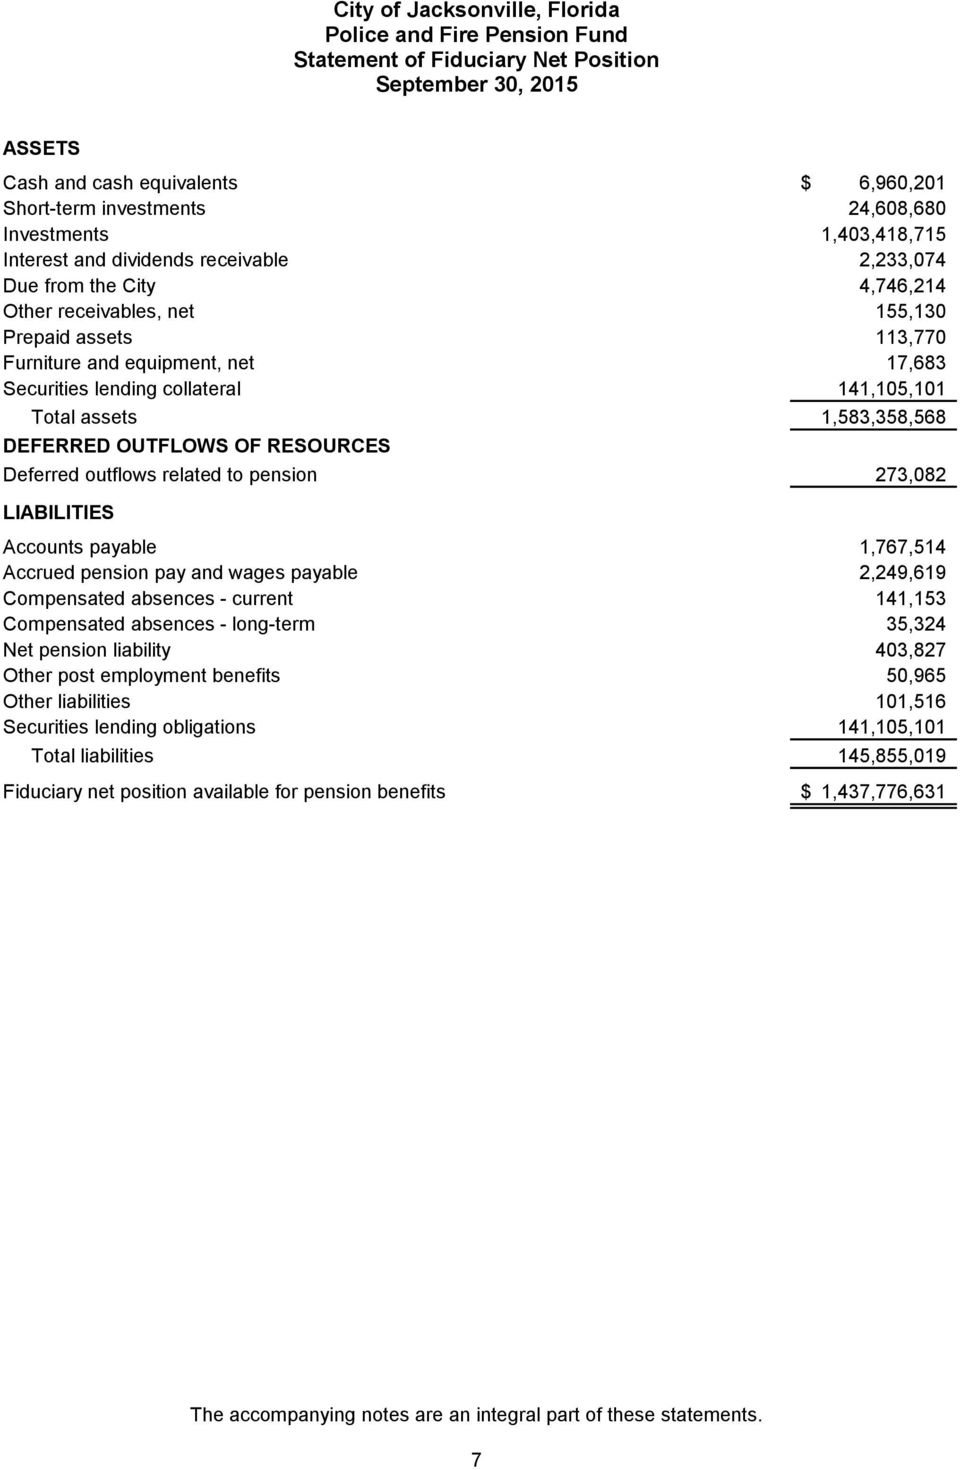 lending collateral 141,105,101 Total assets 1,583,358,568 DEFERRED OUTFLOWS OF RESOURCES Deferred outflows related to pension 273,082 LIABILITIES Accounts payable 1,767,514 Accrued pension pay and